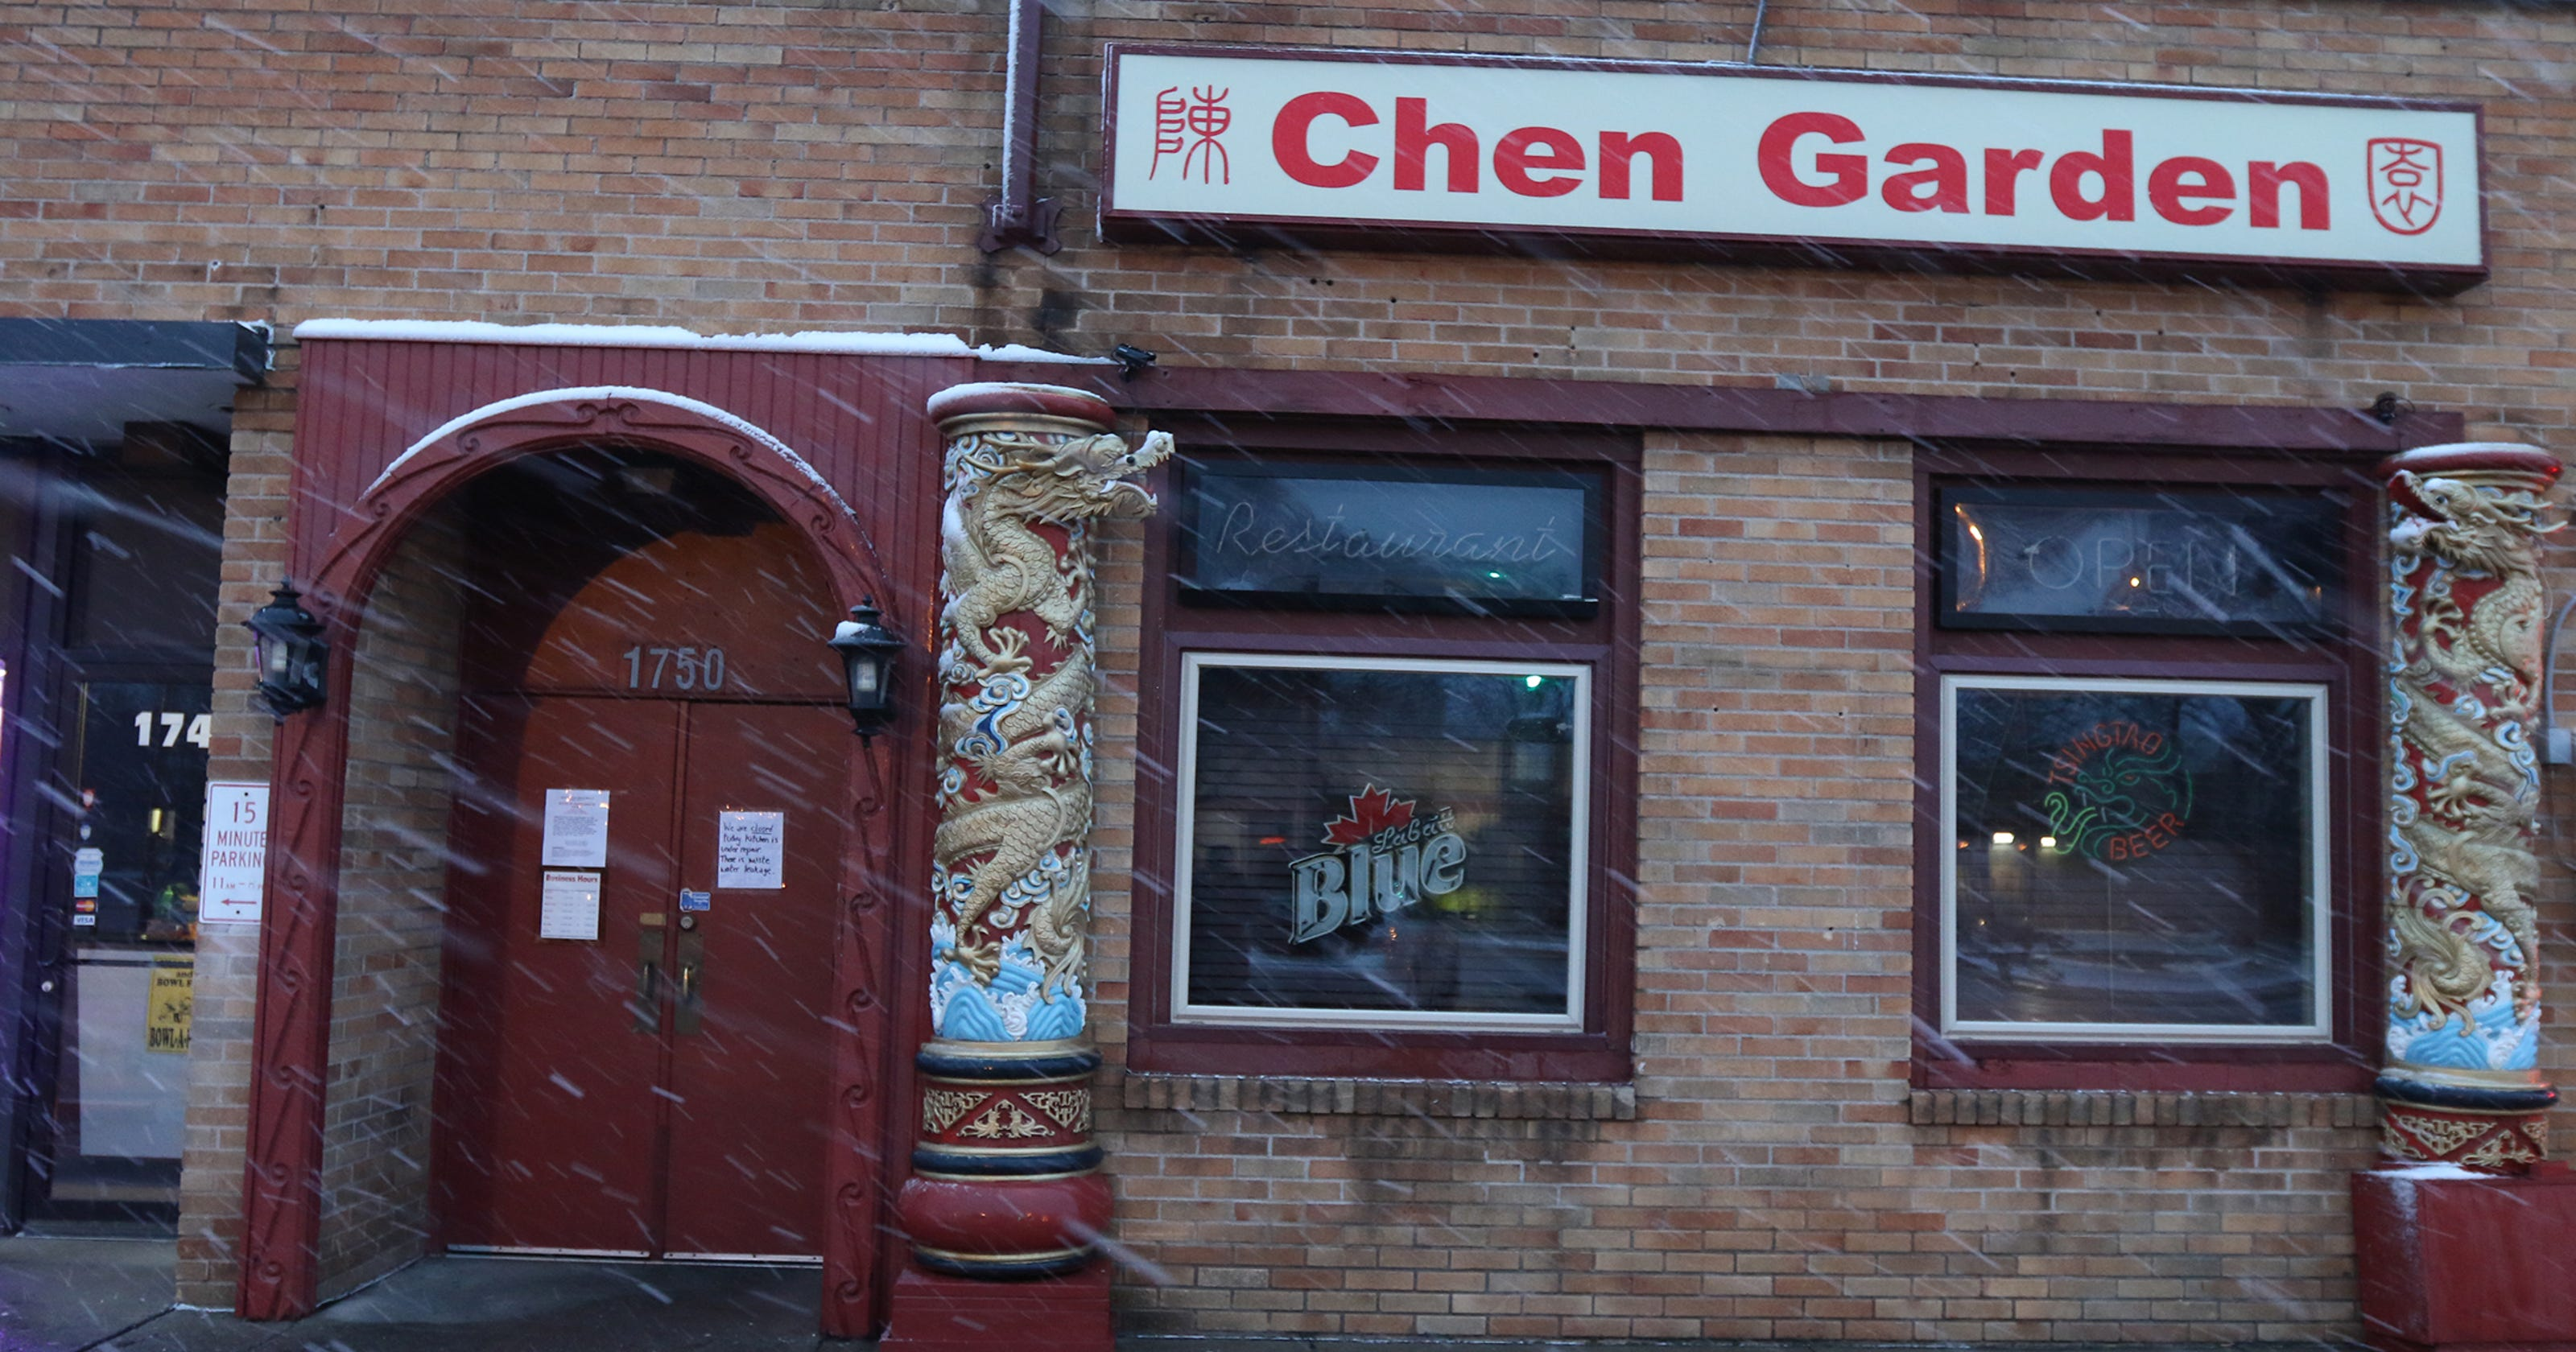 rodent infestation closes chen garden in brighton - Chens Garden